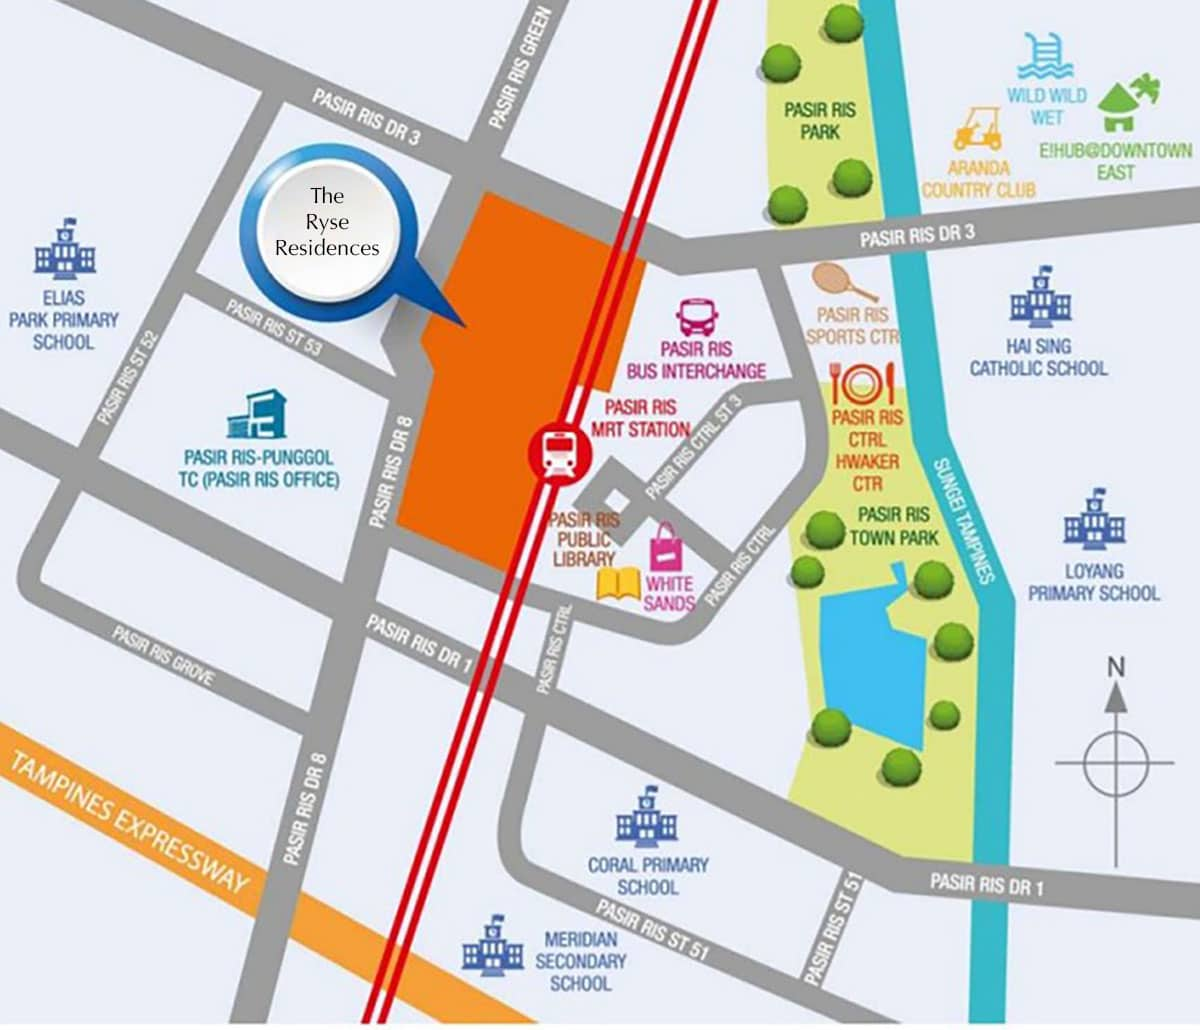 the ryse residences location map